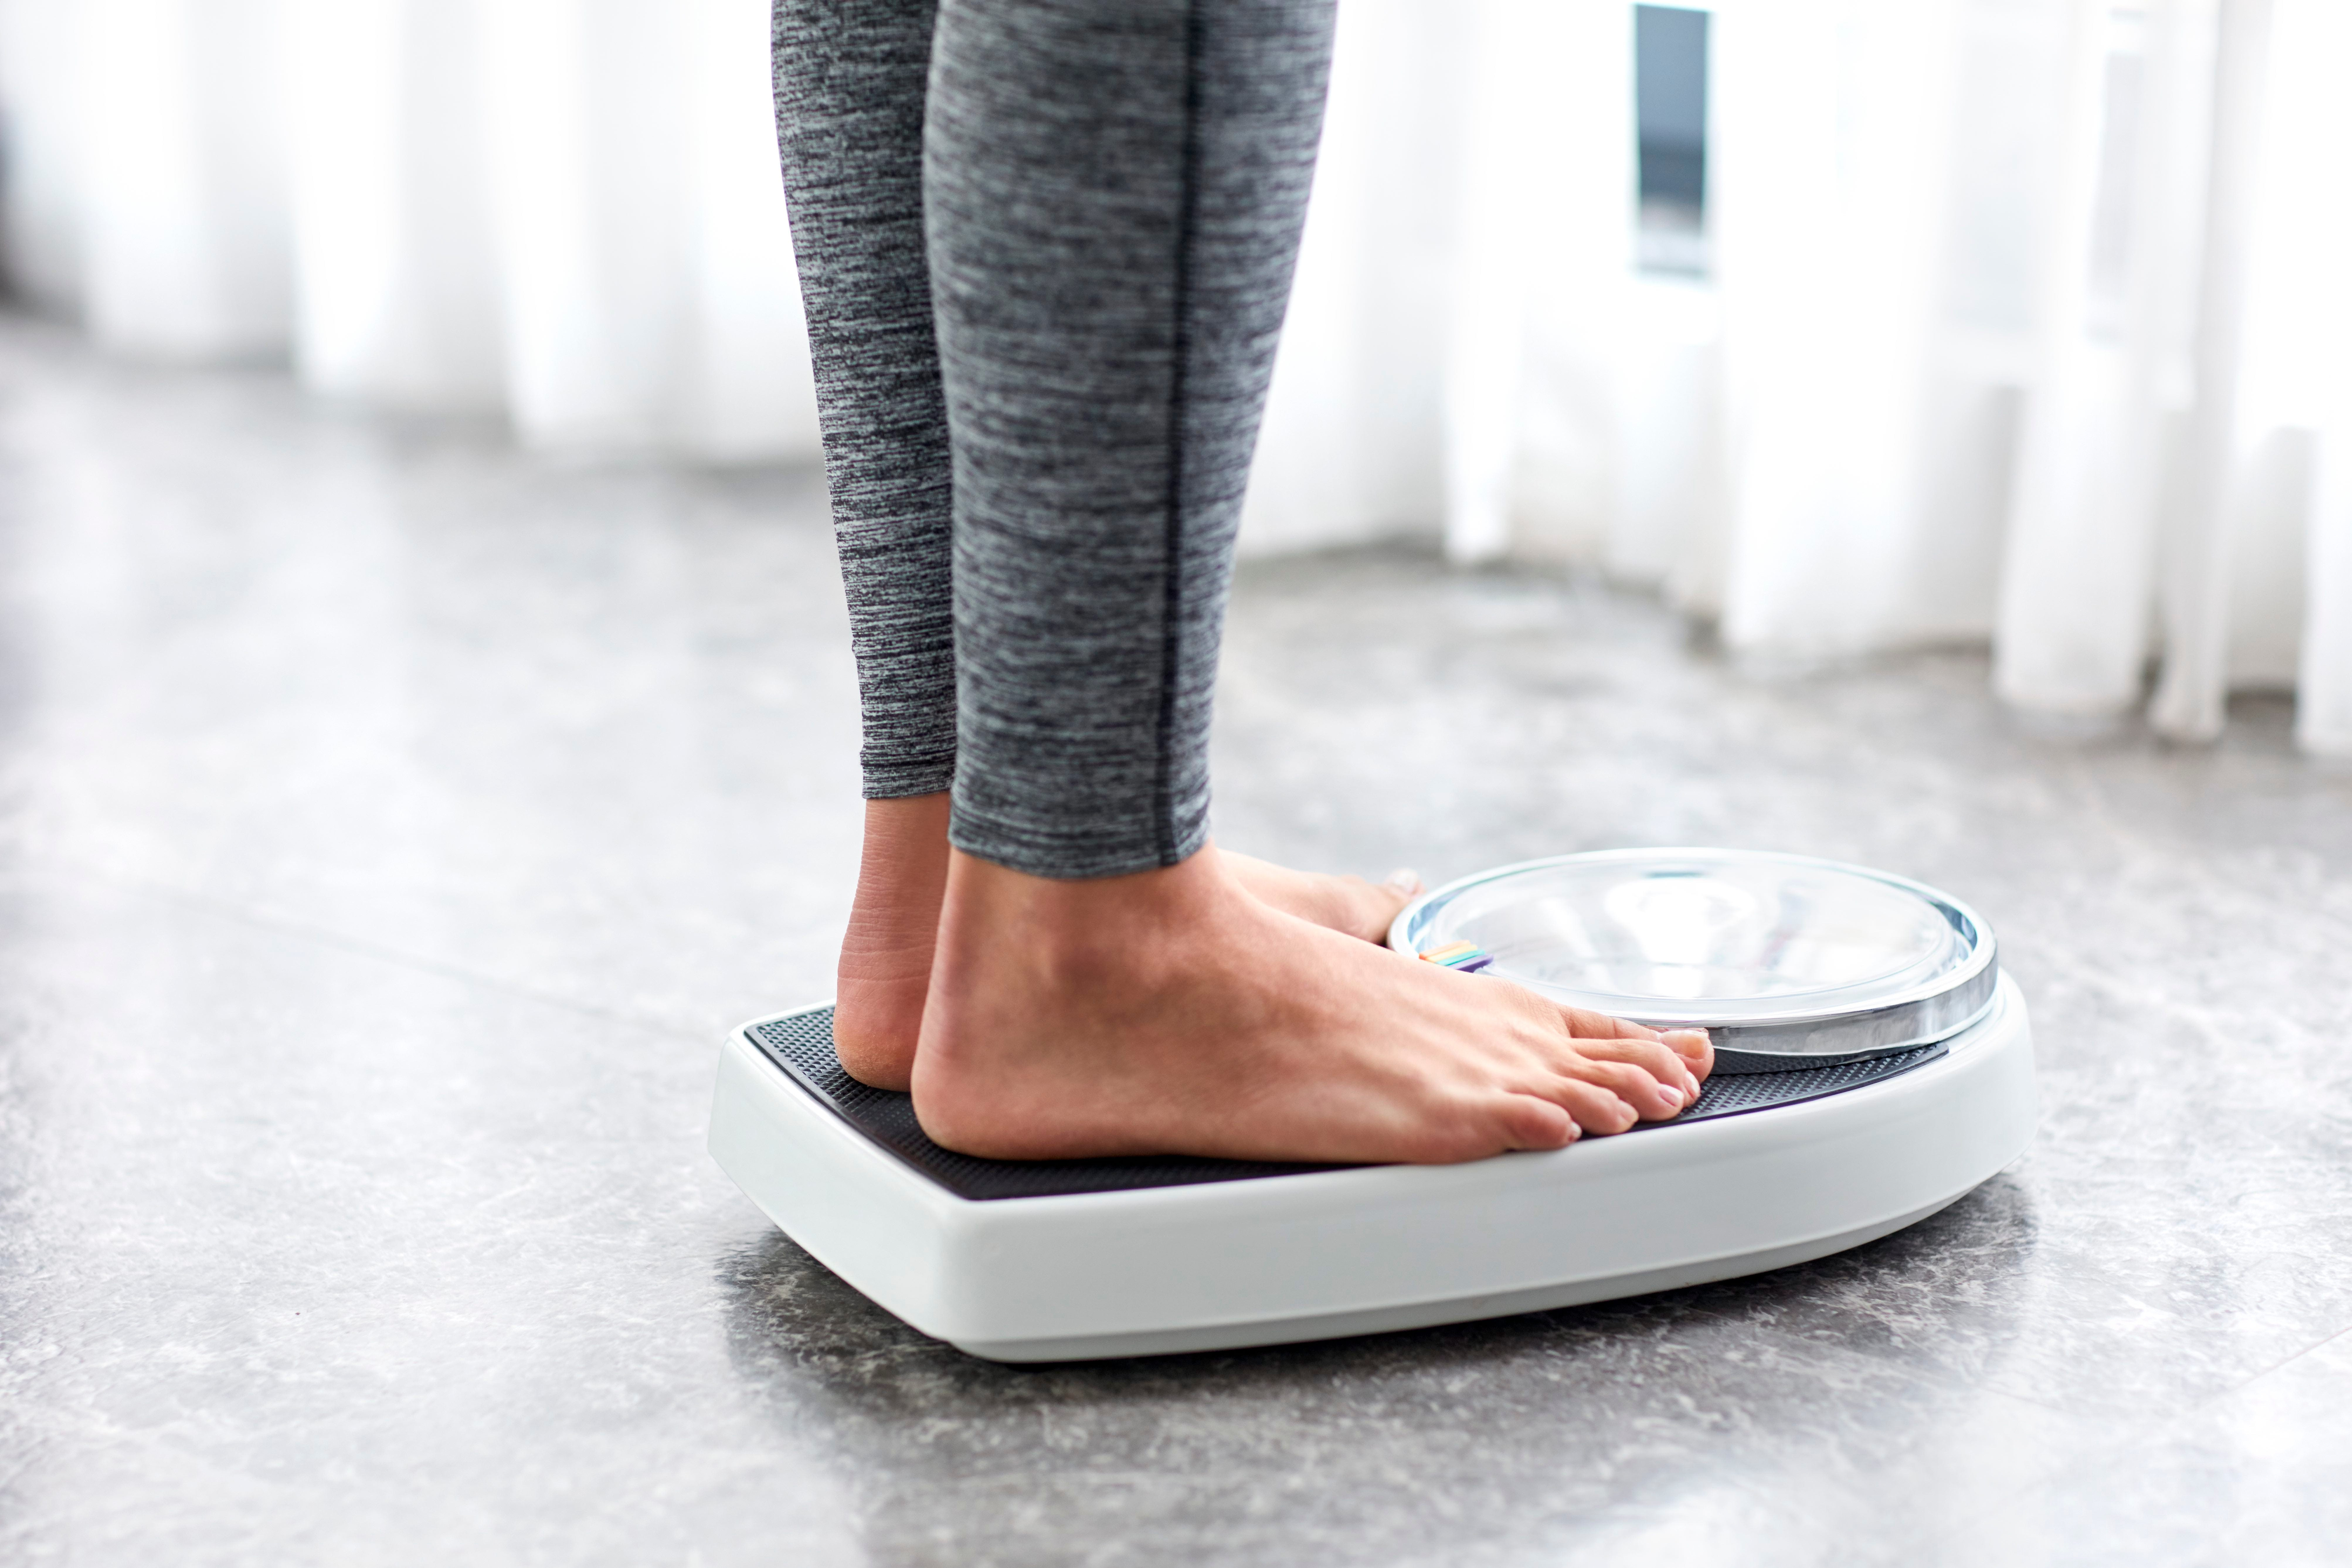 Weight Watchers, Jenny Craig remain top picks for dieting, weight loss in 2019